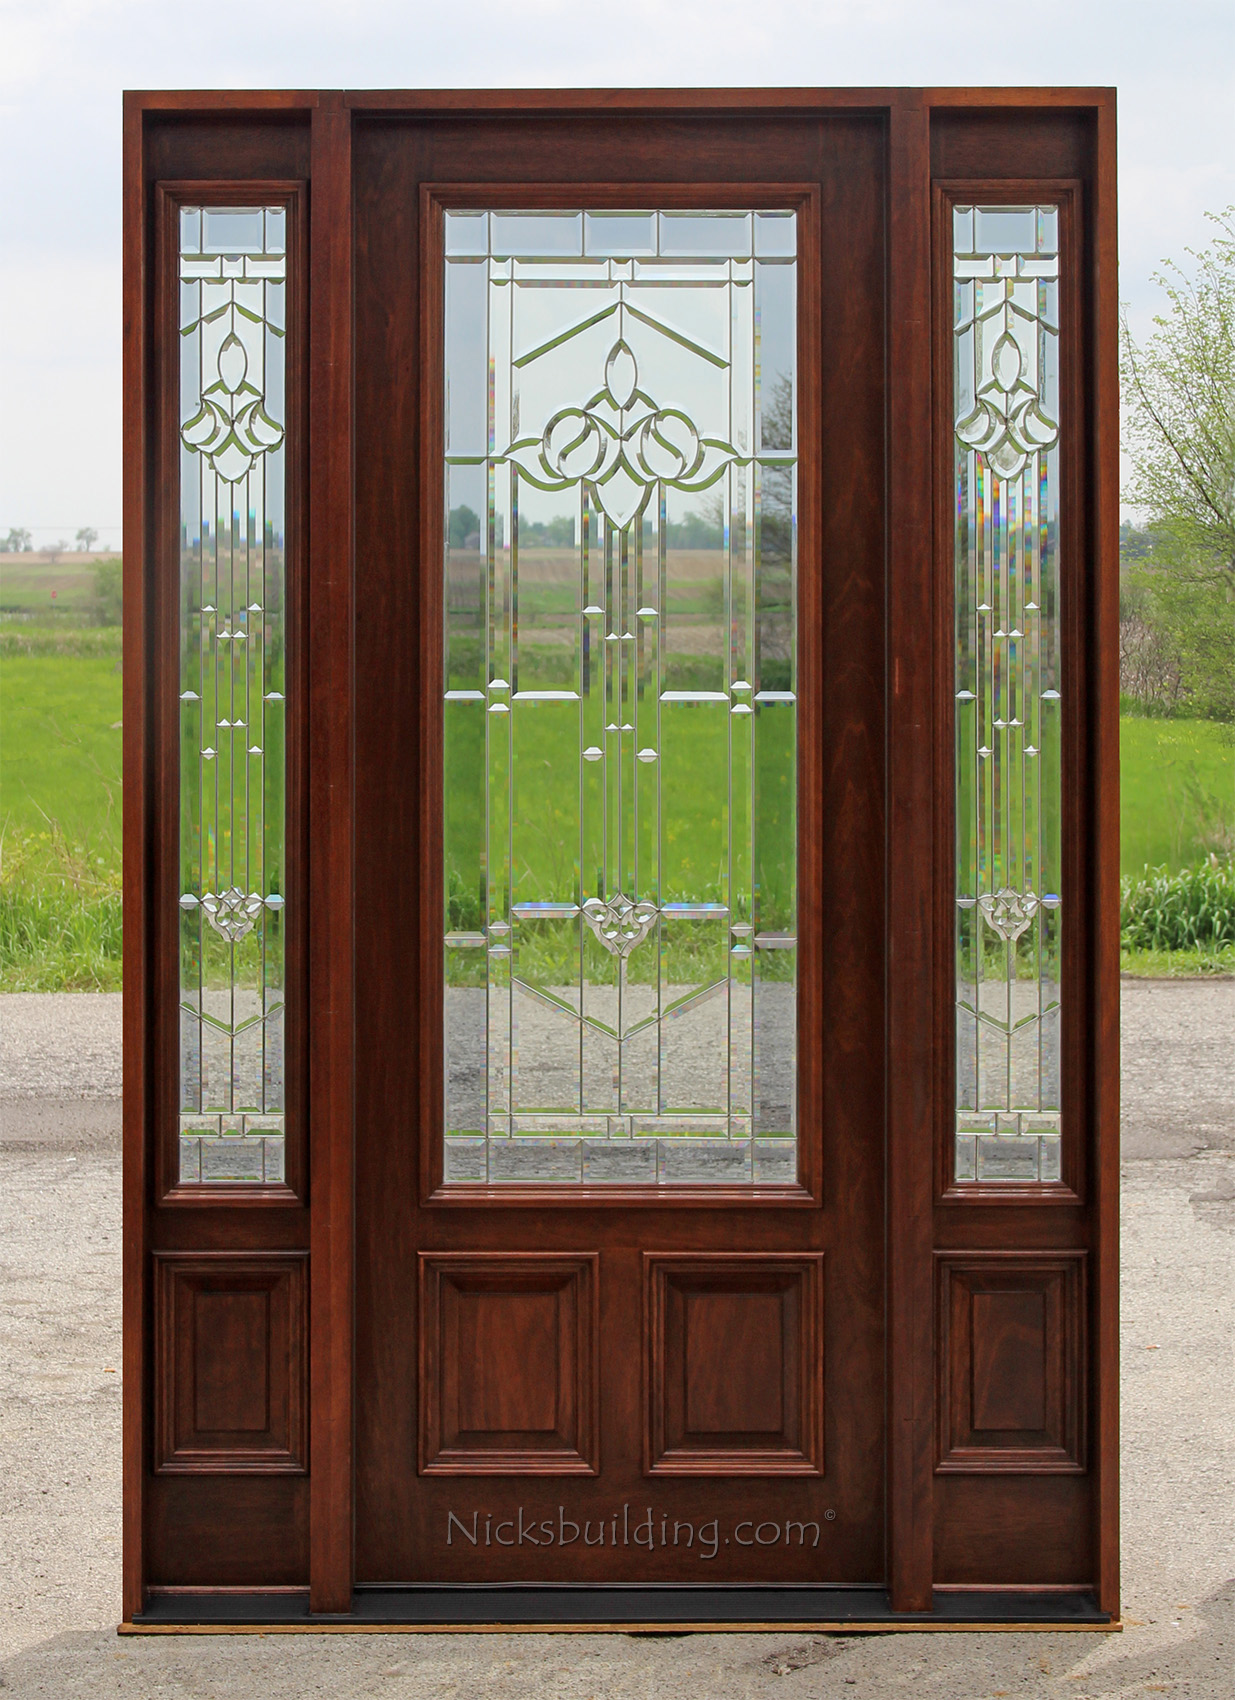 Exterior doors with sidelites 8 39 0 solid mahogany doors for 8 foot exterior doors